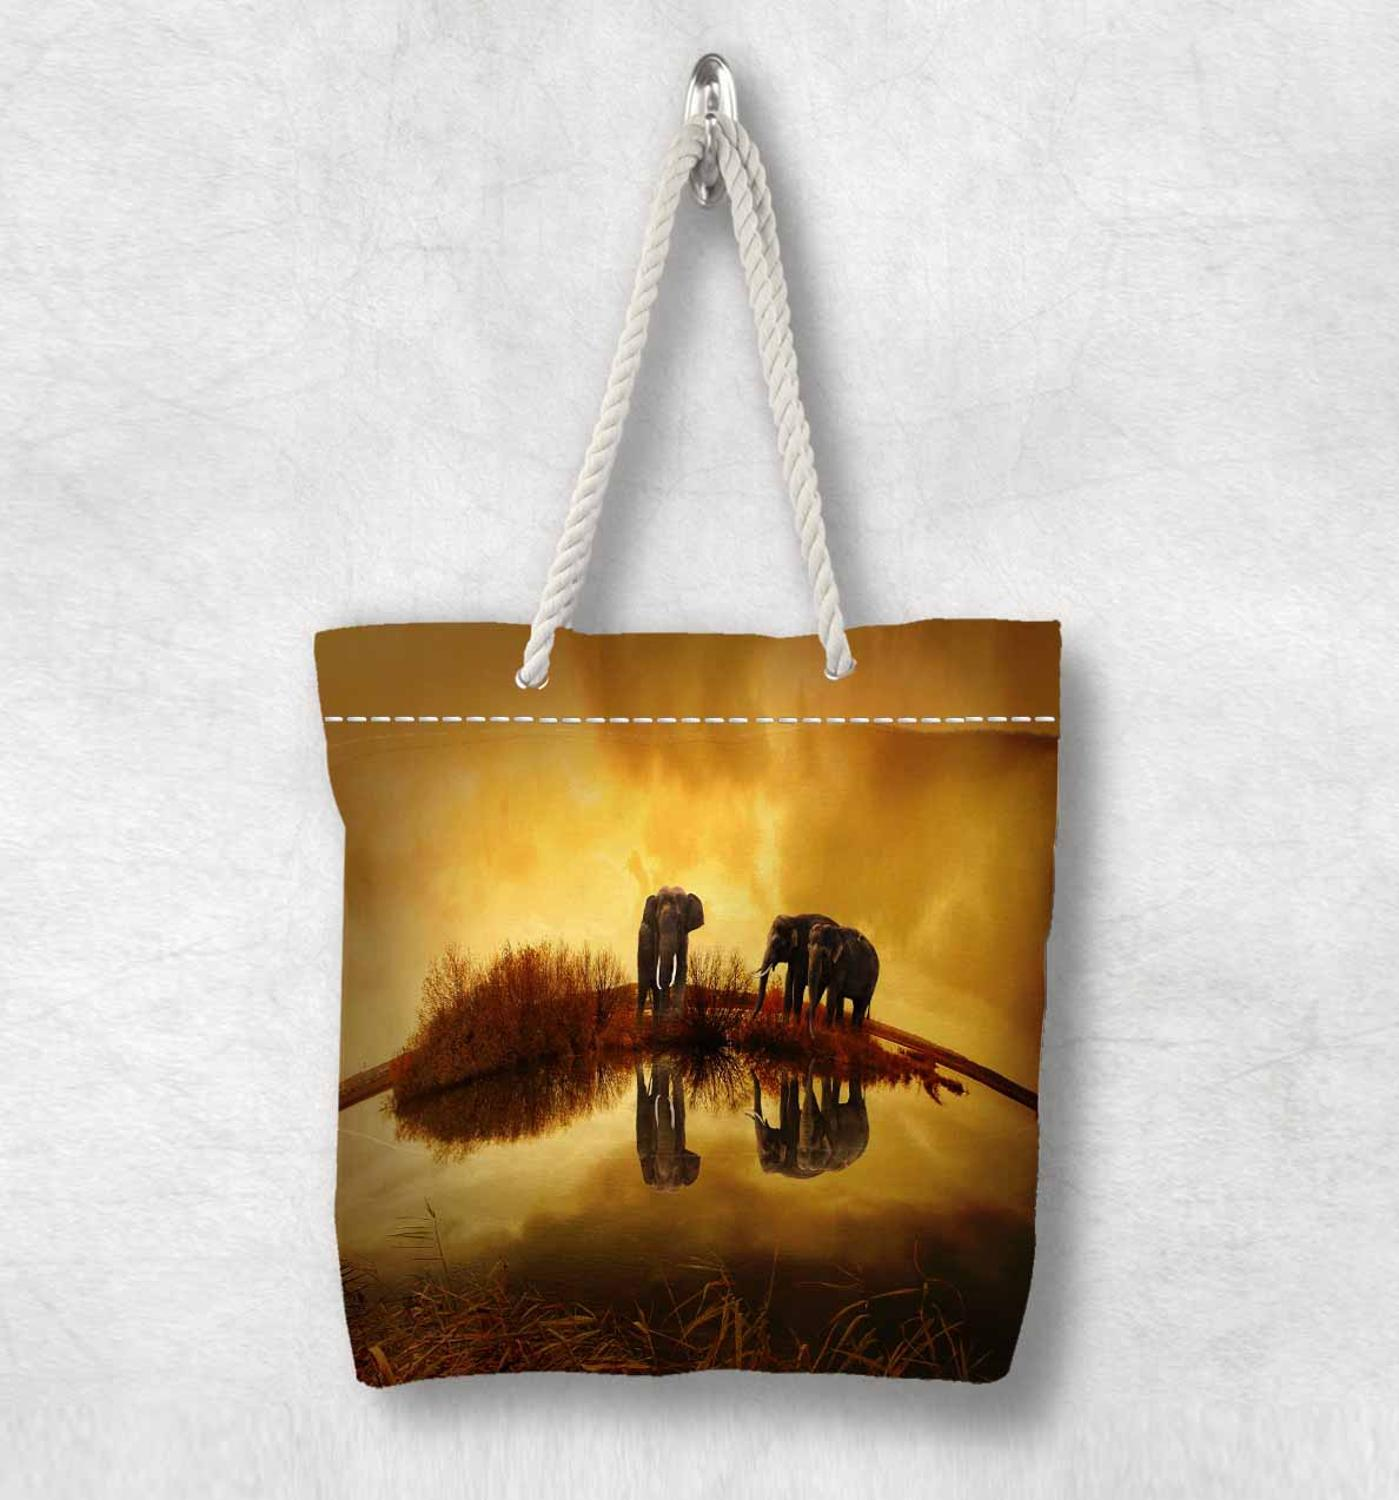 Else African Yellow Elephants Sun Set New Fashion White Rope Handle Canvas Bag Cotton Canvas Zippered Tote Bag Shoulder Bag